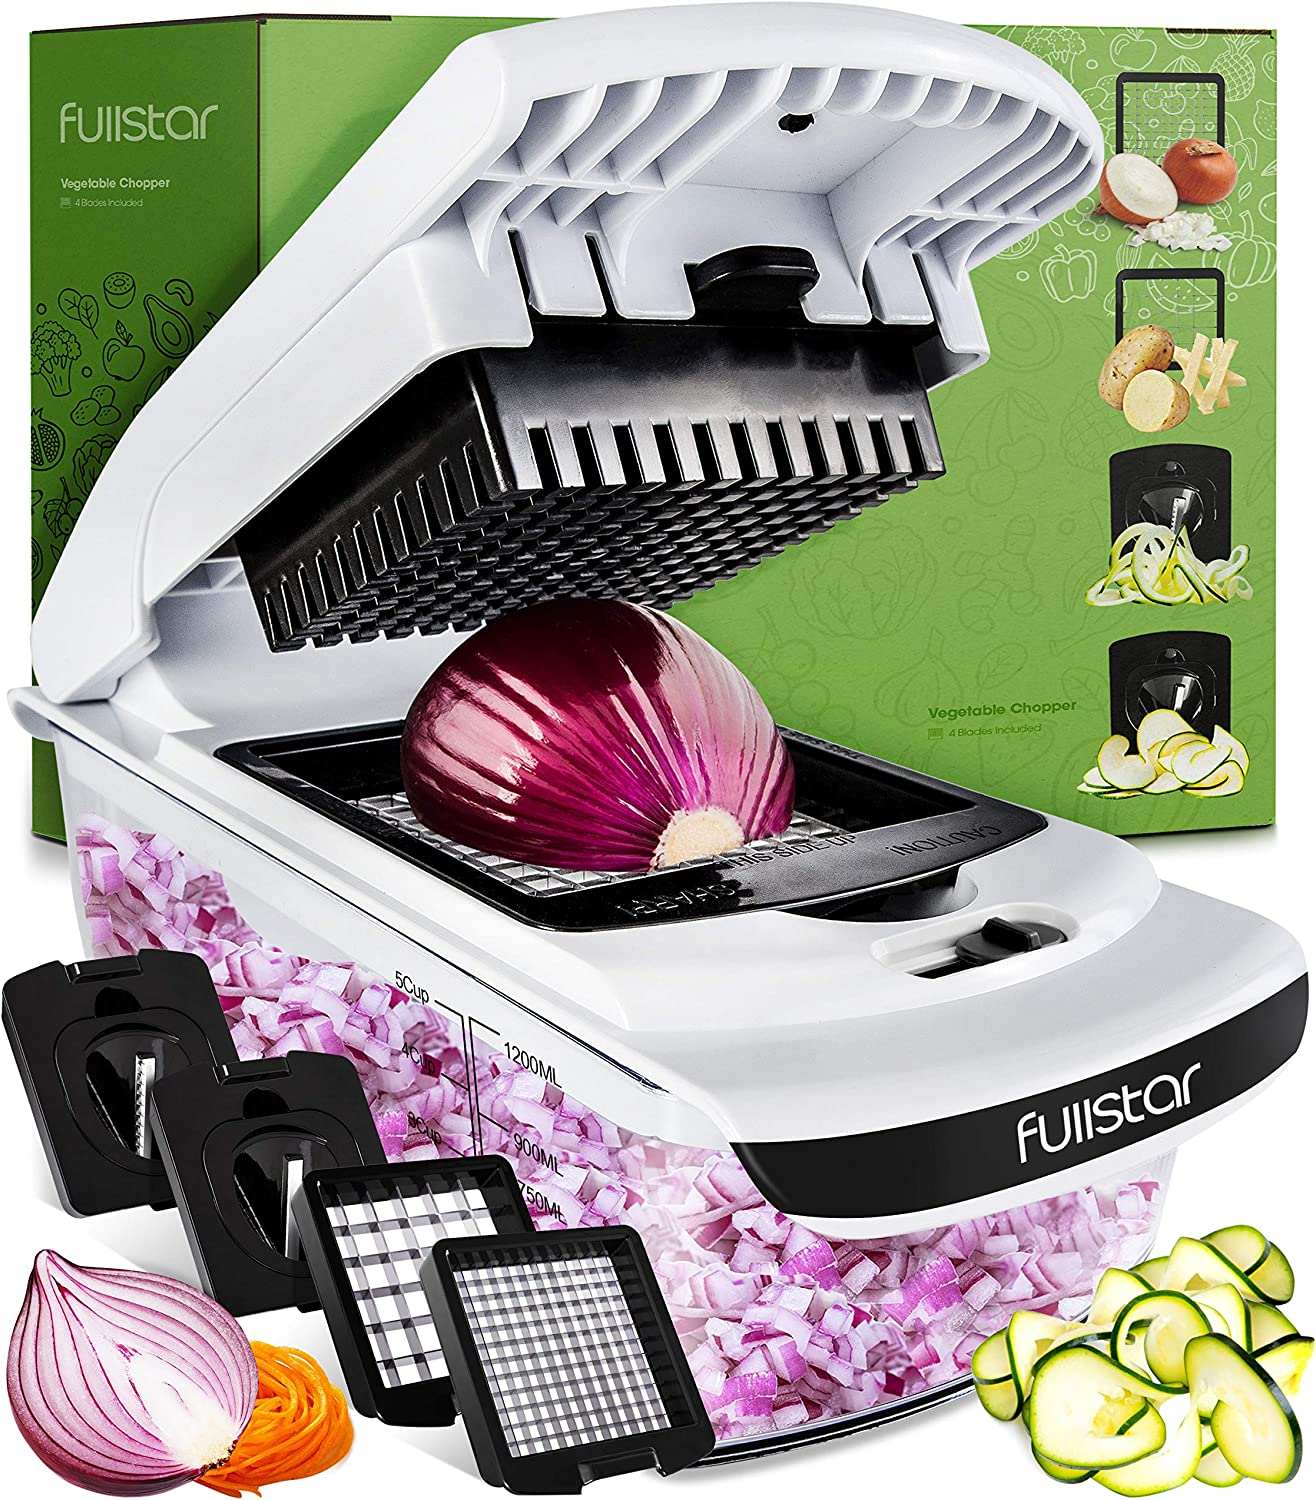 Gifts for Mom: Vegetable Chopper